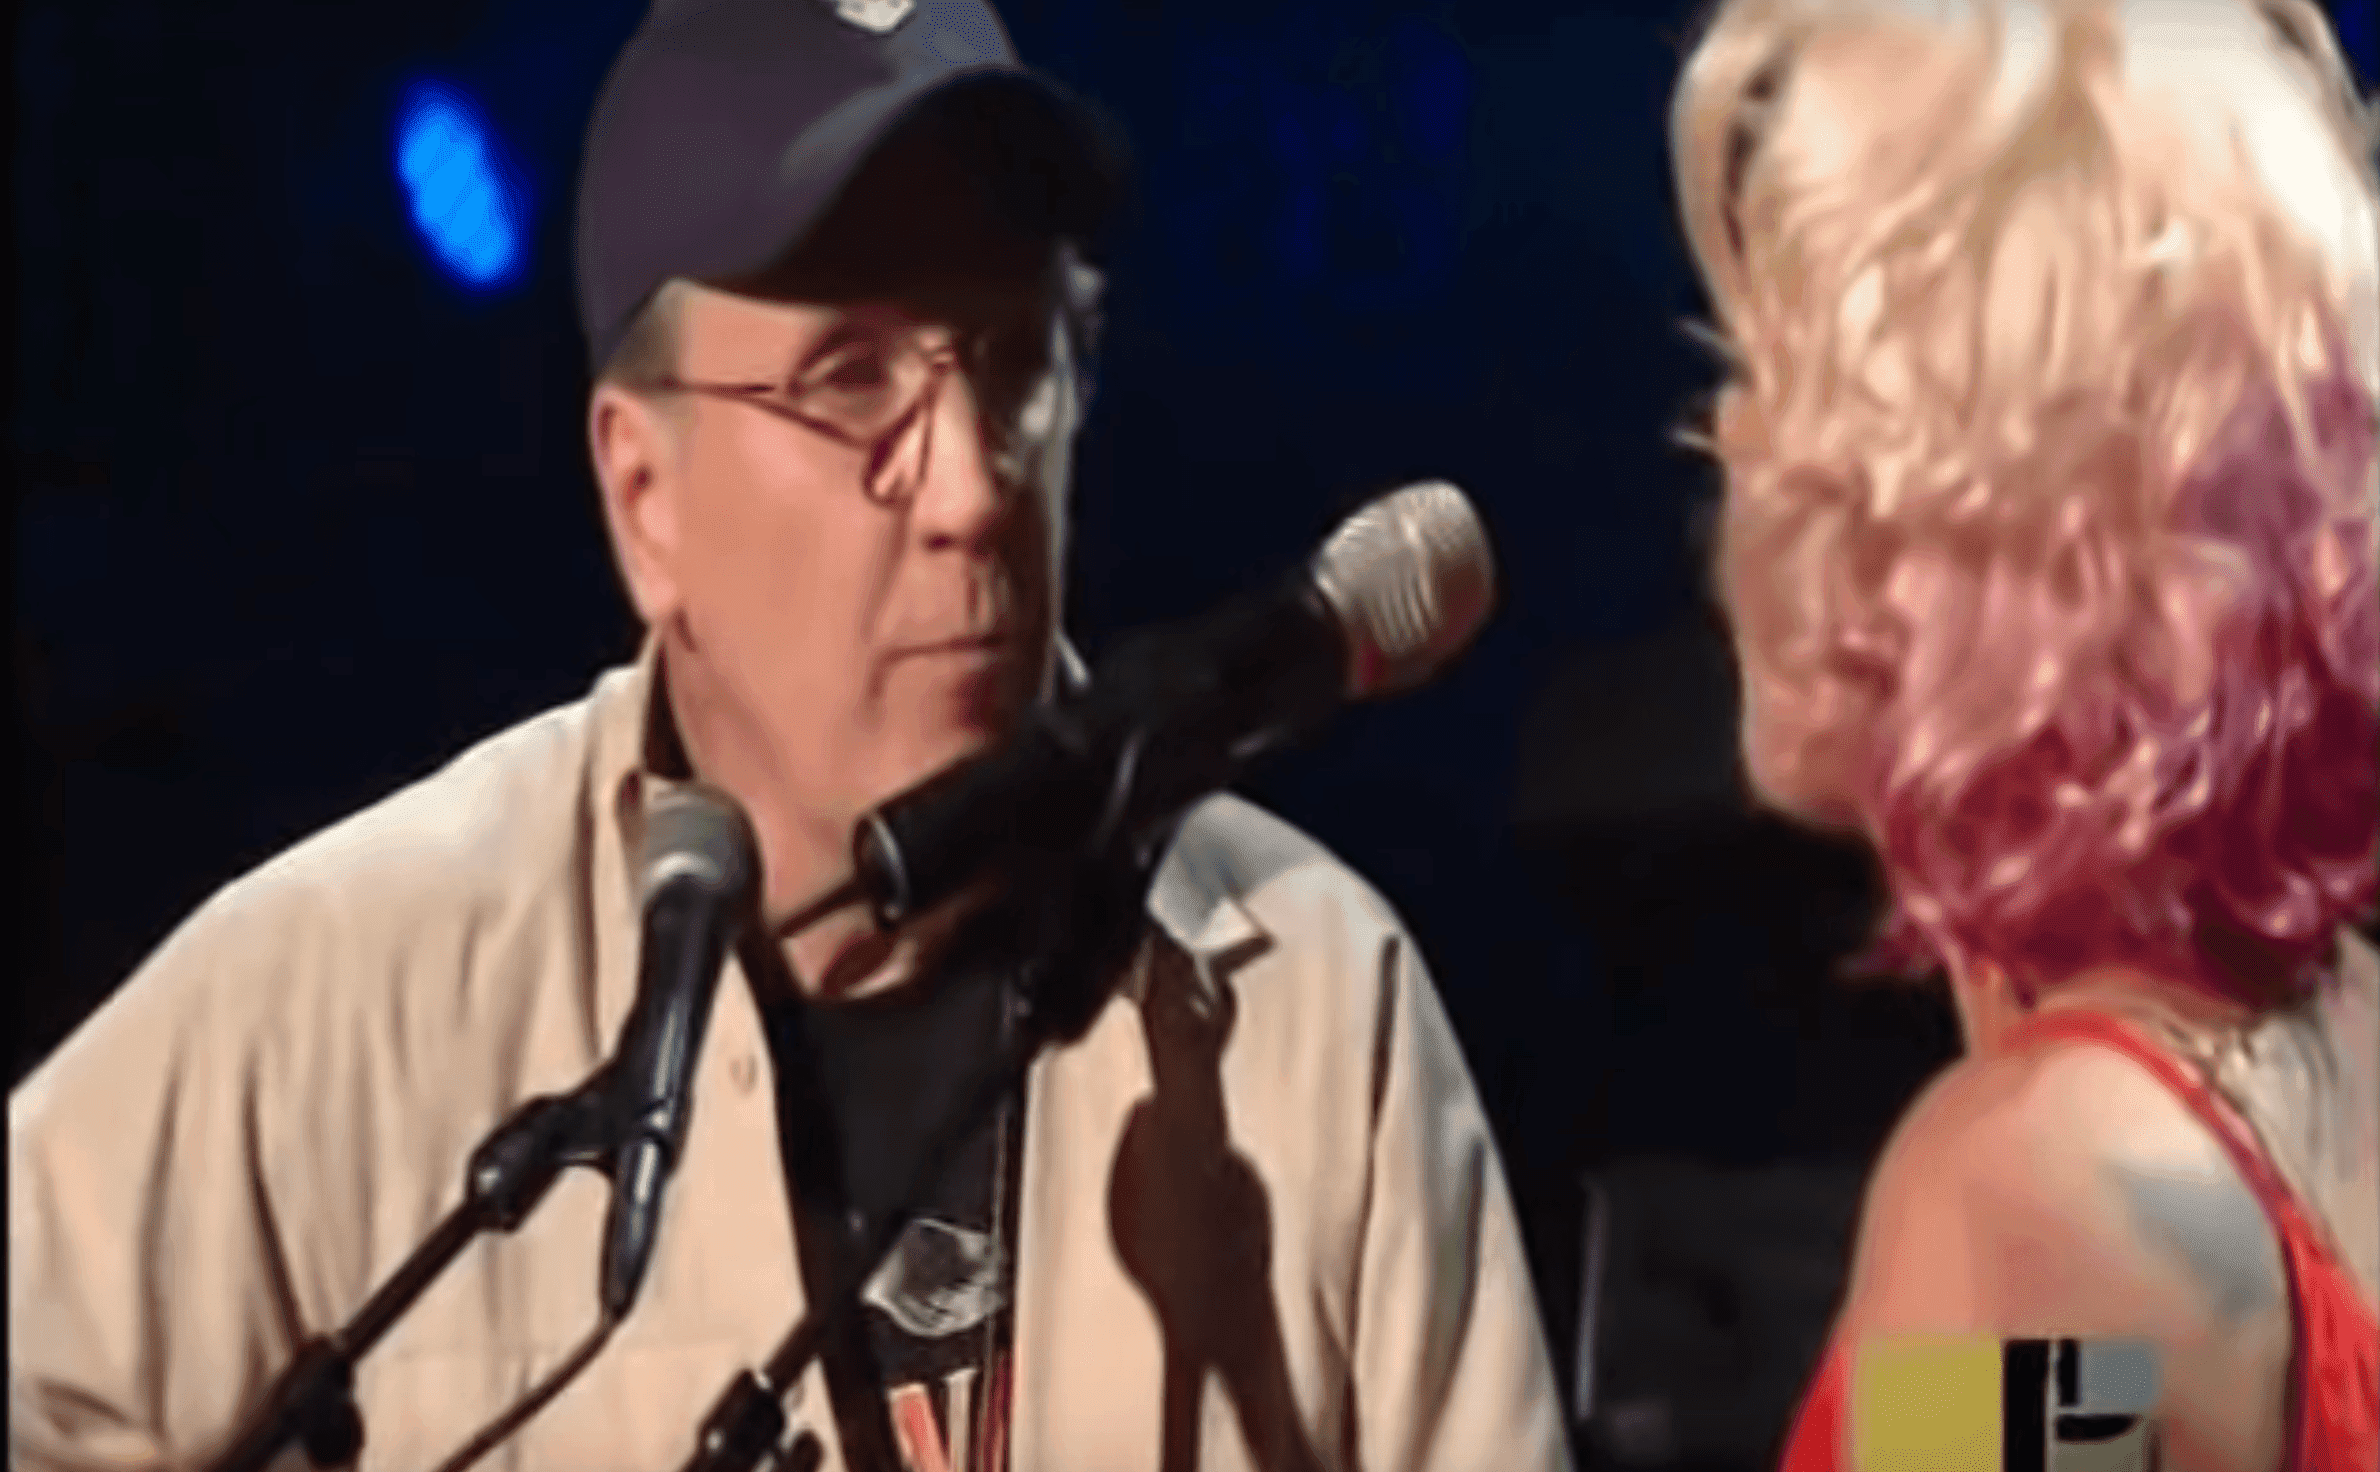 Pink performs with her dad | Photo: YouTube/ratchel83